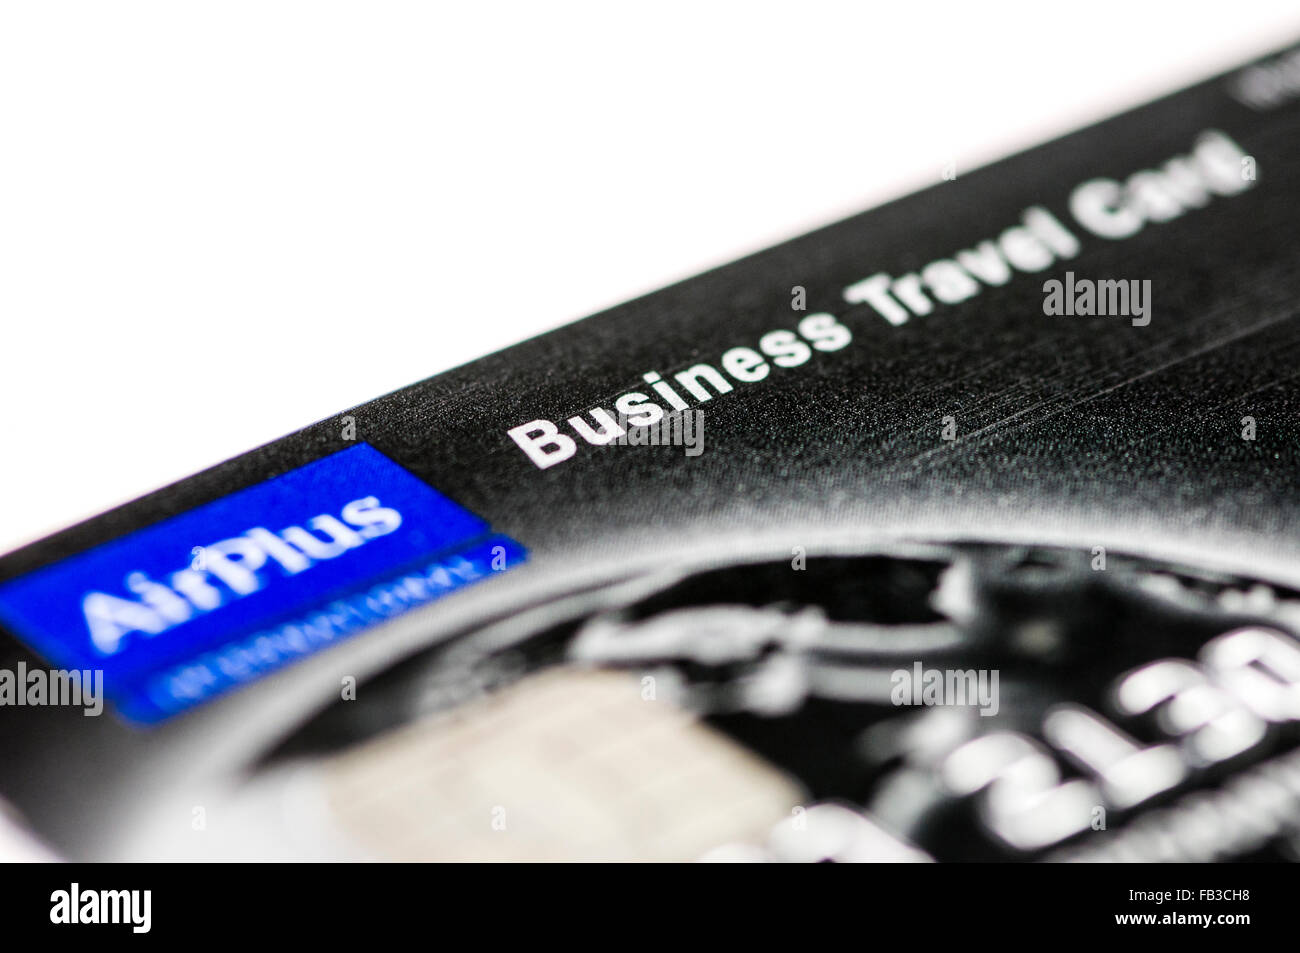 Airplus Business Travel credit card for expenses Stock Photo ...